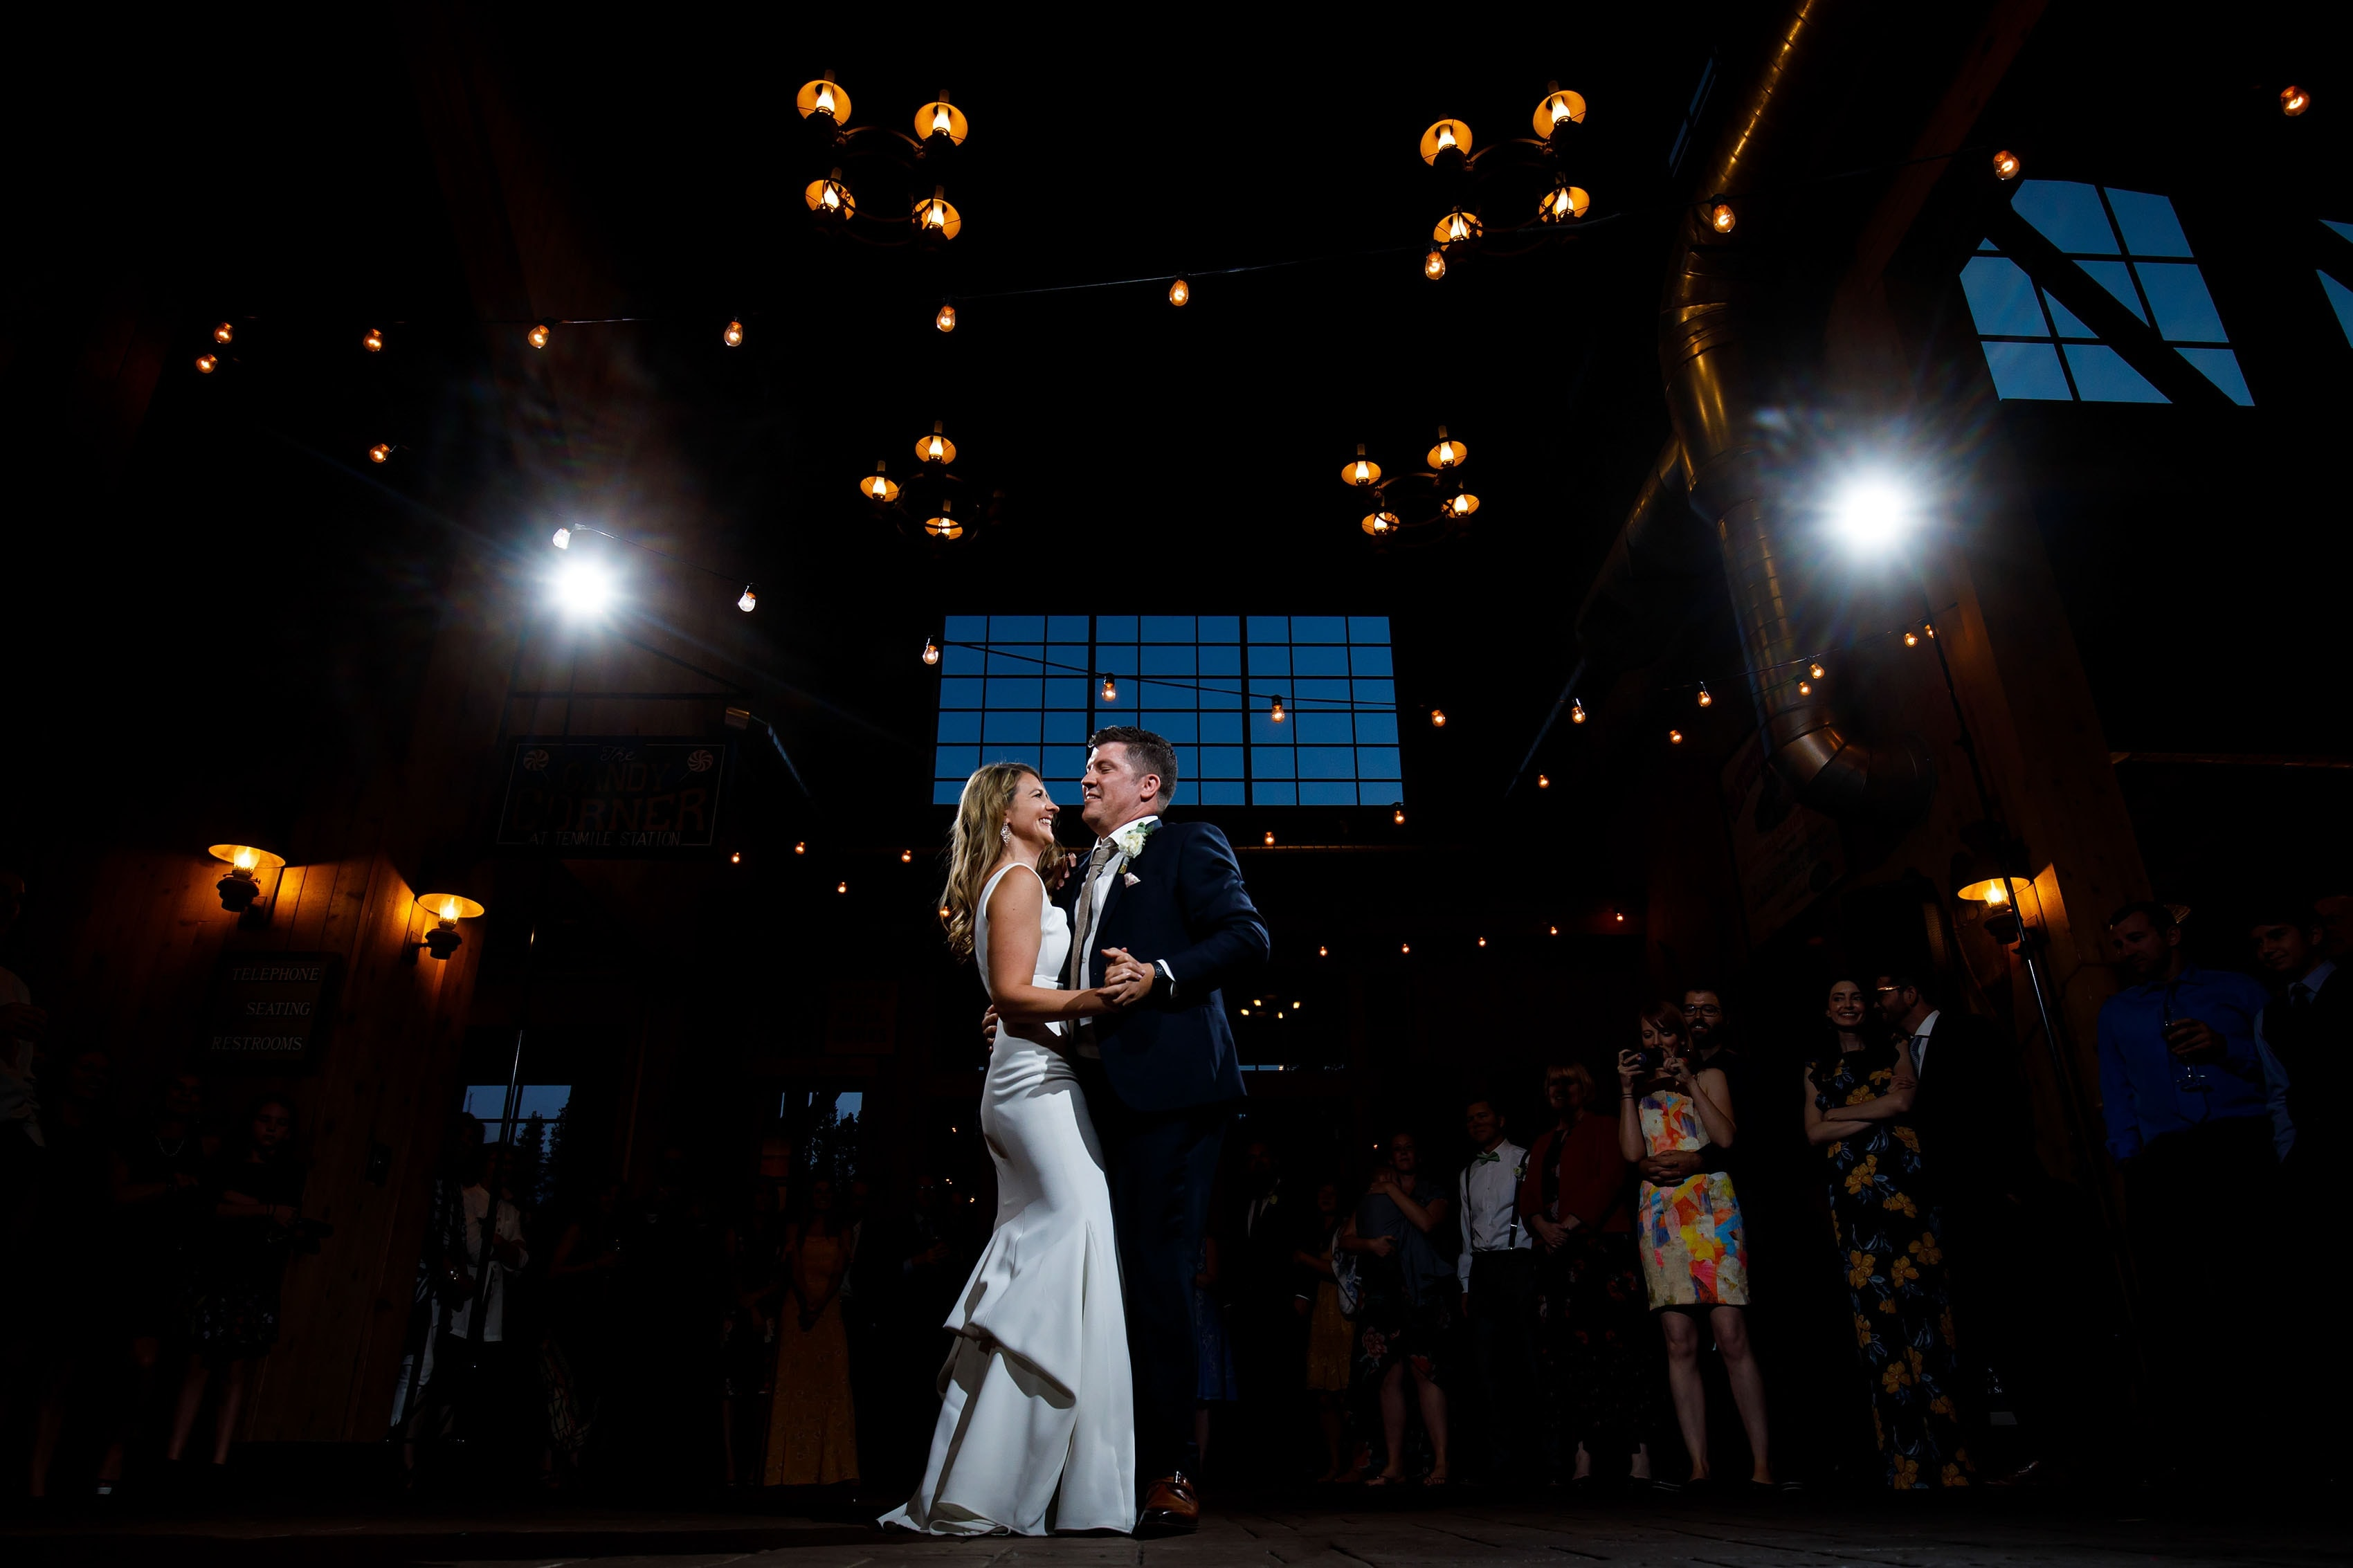 First dance at TenMile Station